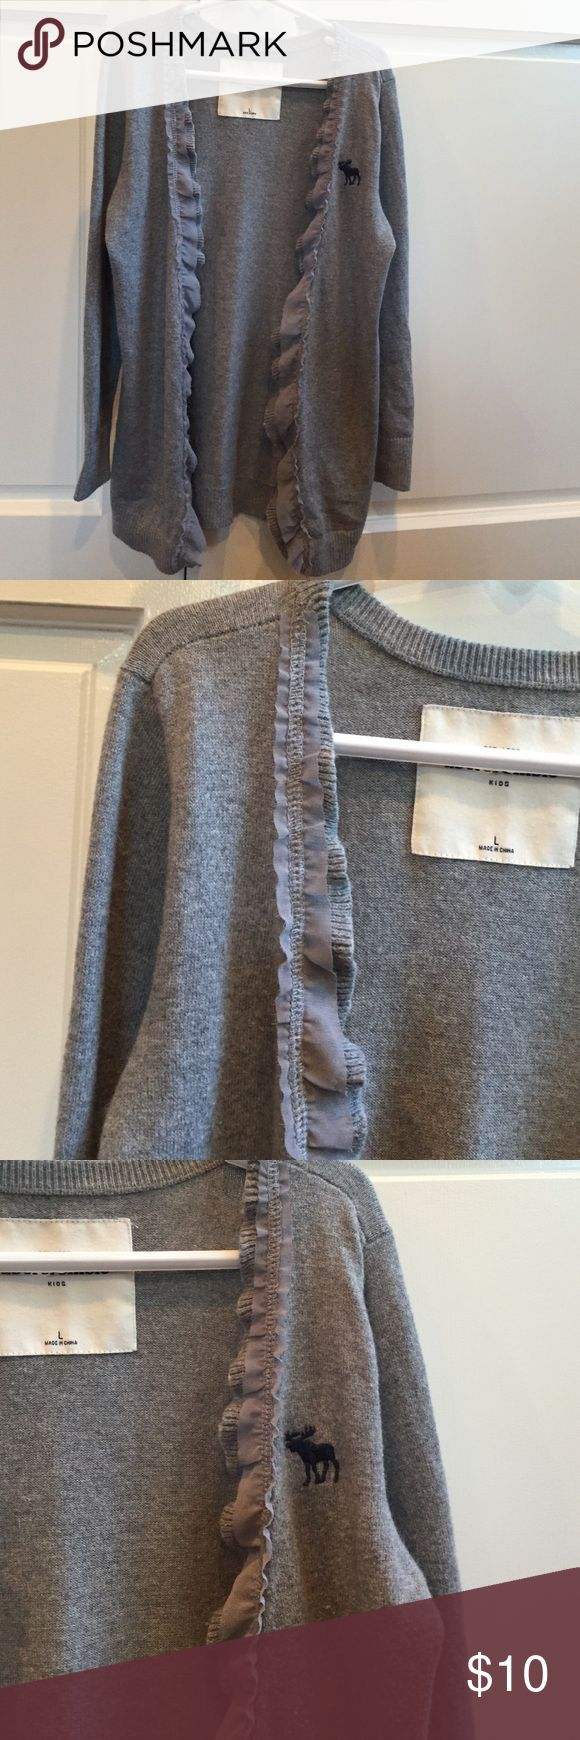 Abercrombie girl's sweater Abercrombie kids girl's gray sweater in good condition. abercrombie kids Jackets & Coats